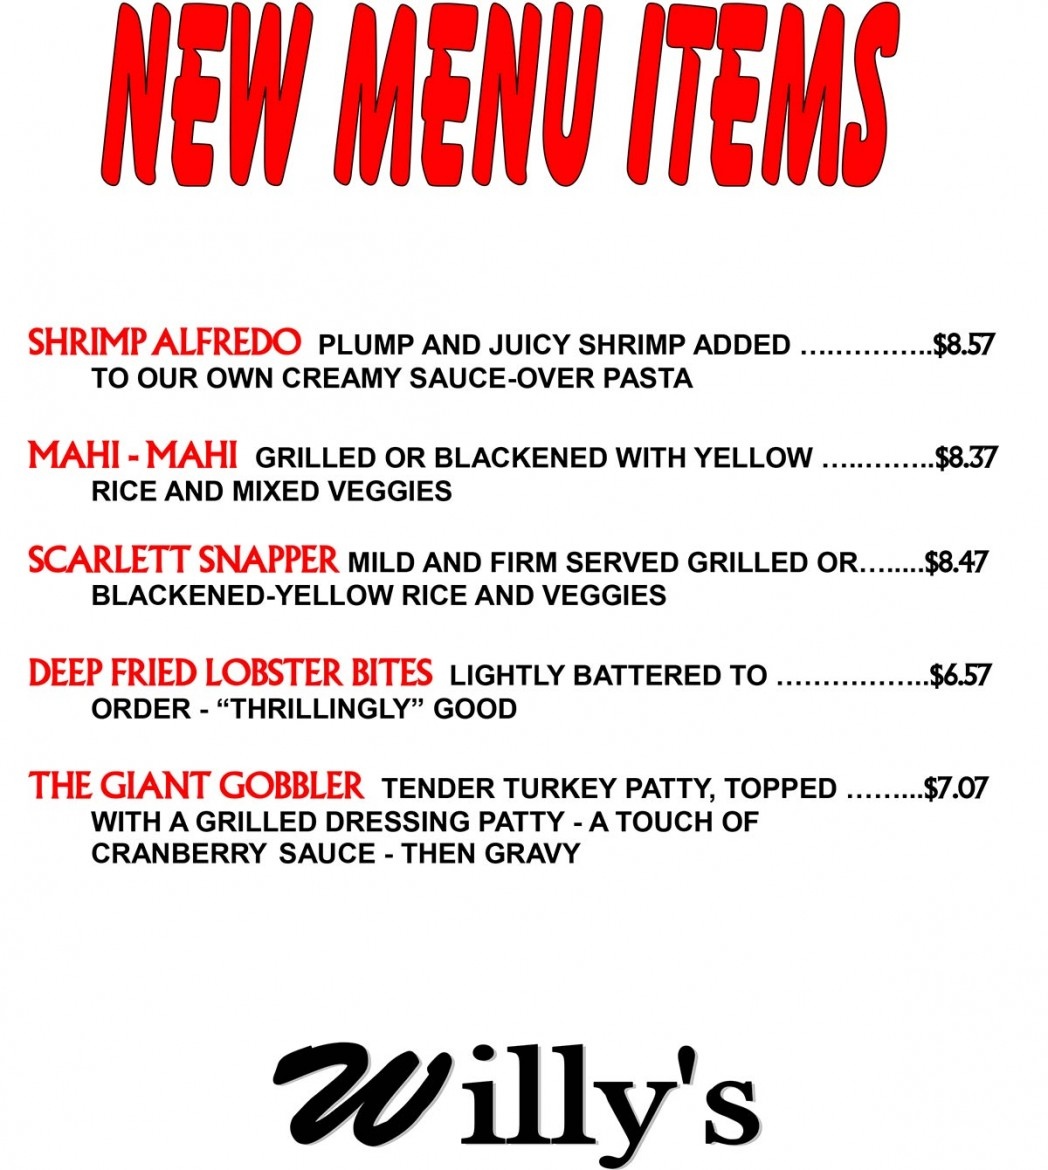 REVISED-Willy's-New-Menu-Items